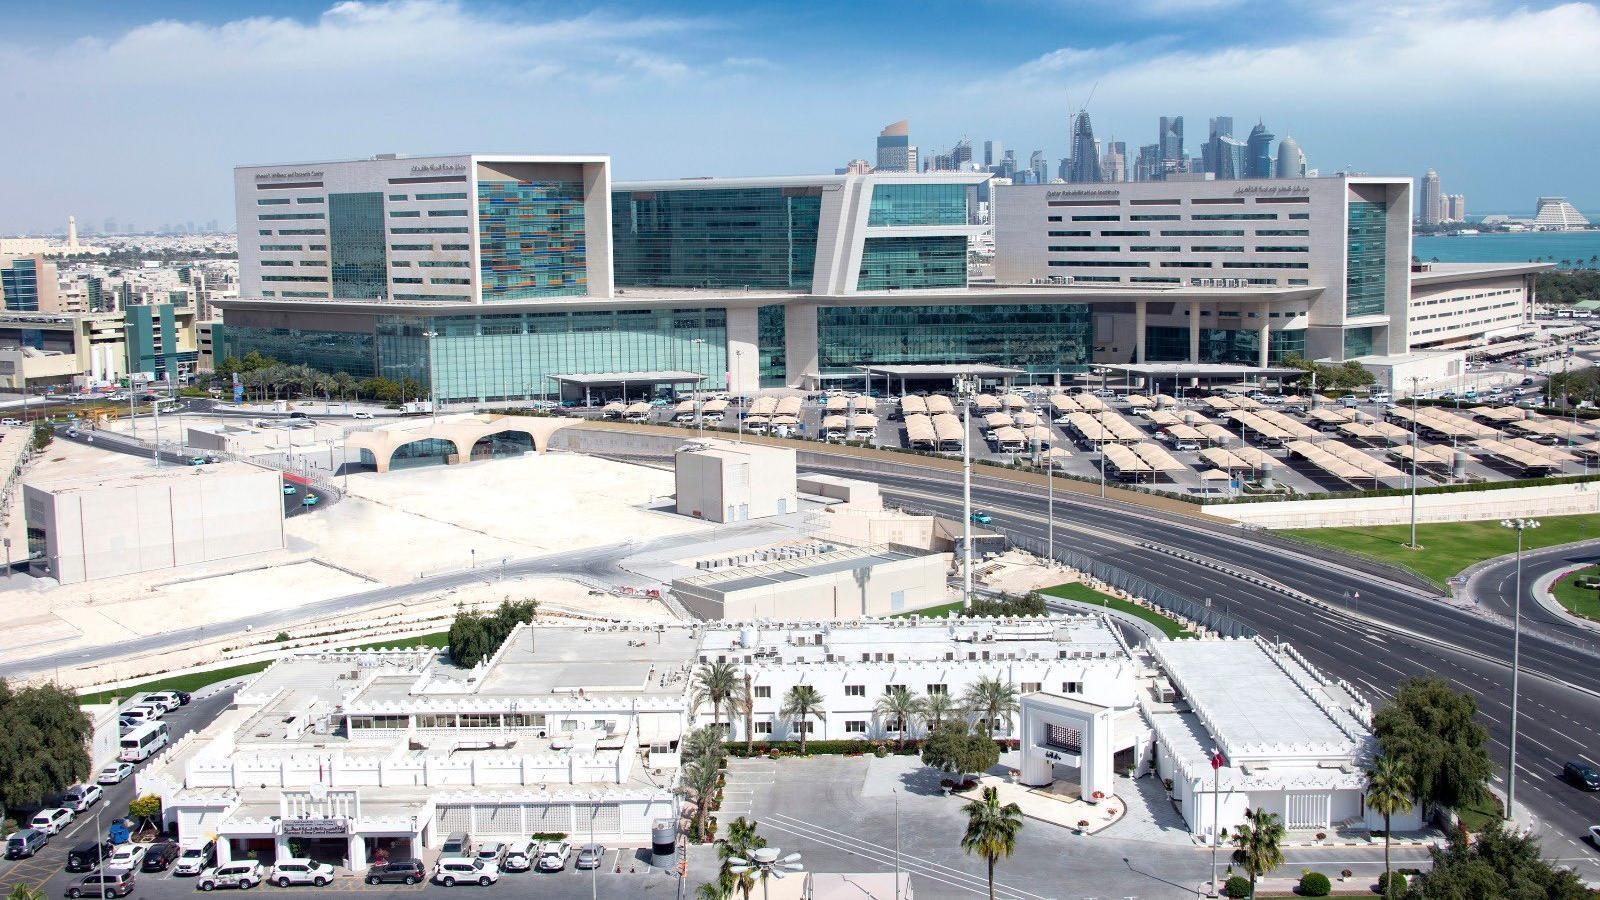 HMC continues to provide innovative treatments through Heart Hospital for various types of patients